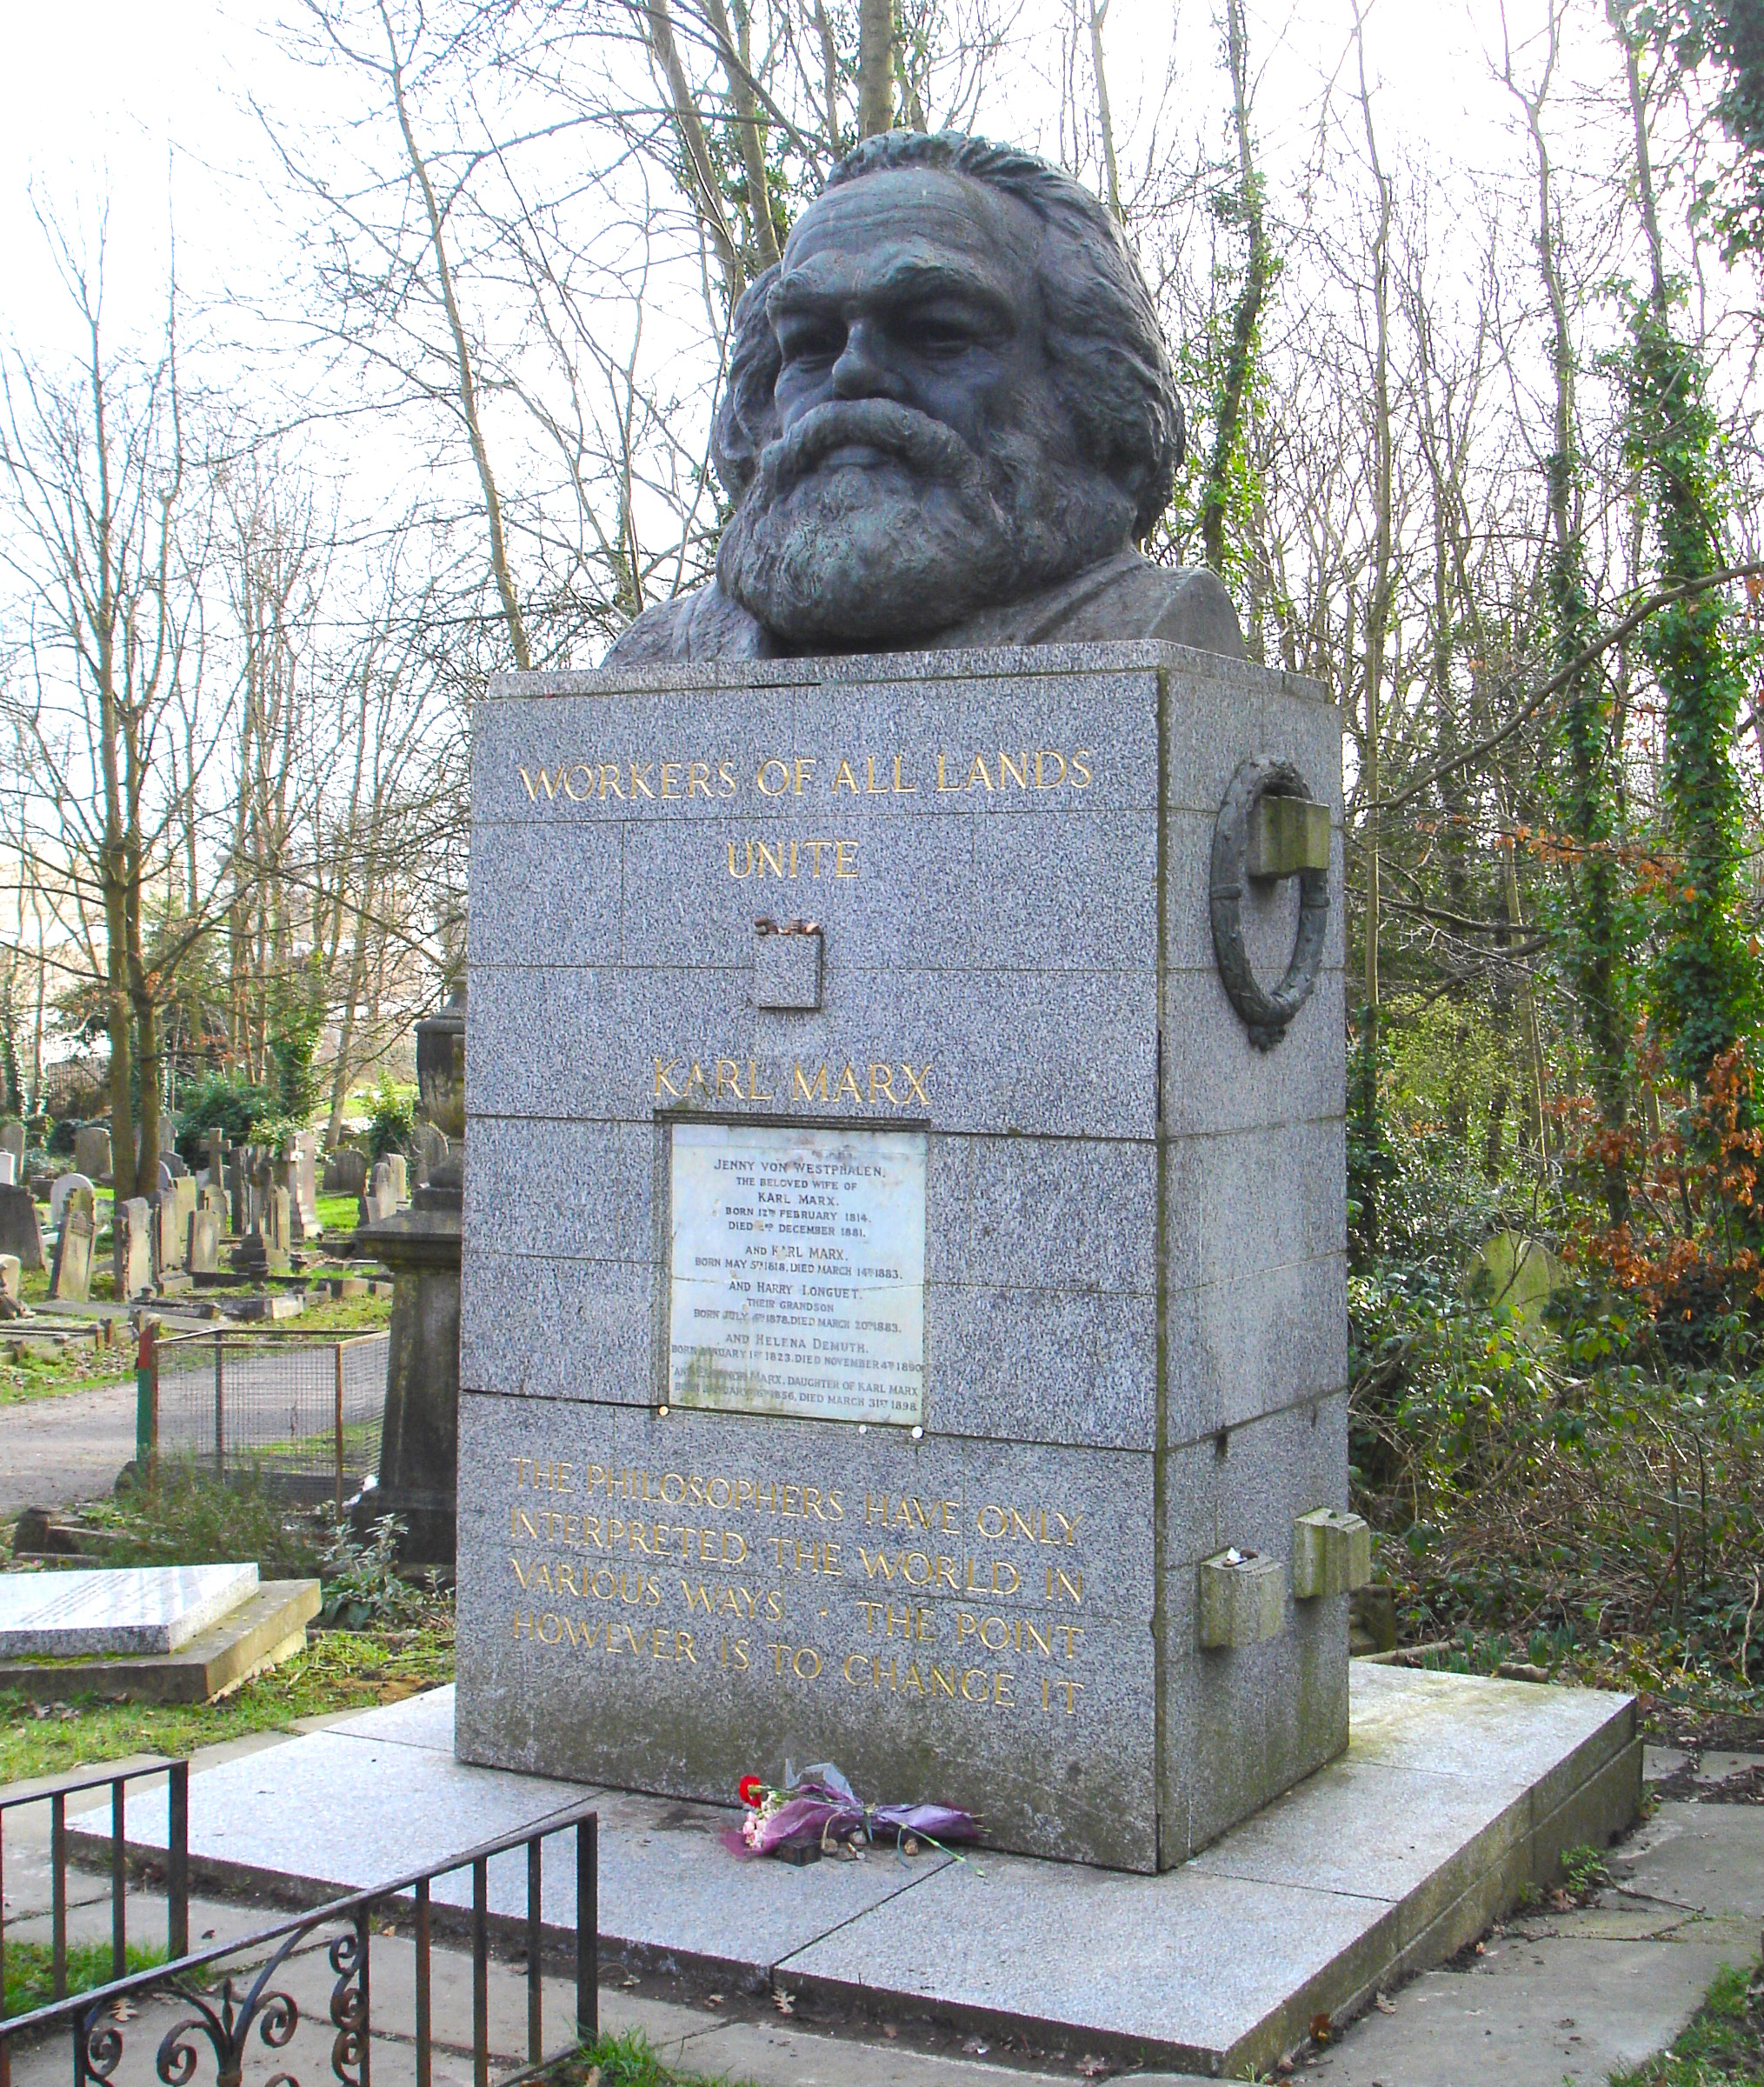 https://i0.wp.com/upload.wikimedia.org/wikipedia/commons/9/9d/KarlMarx_Tomb.JPG